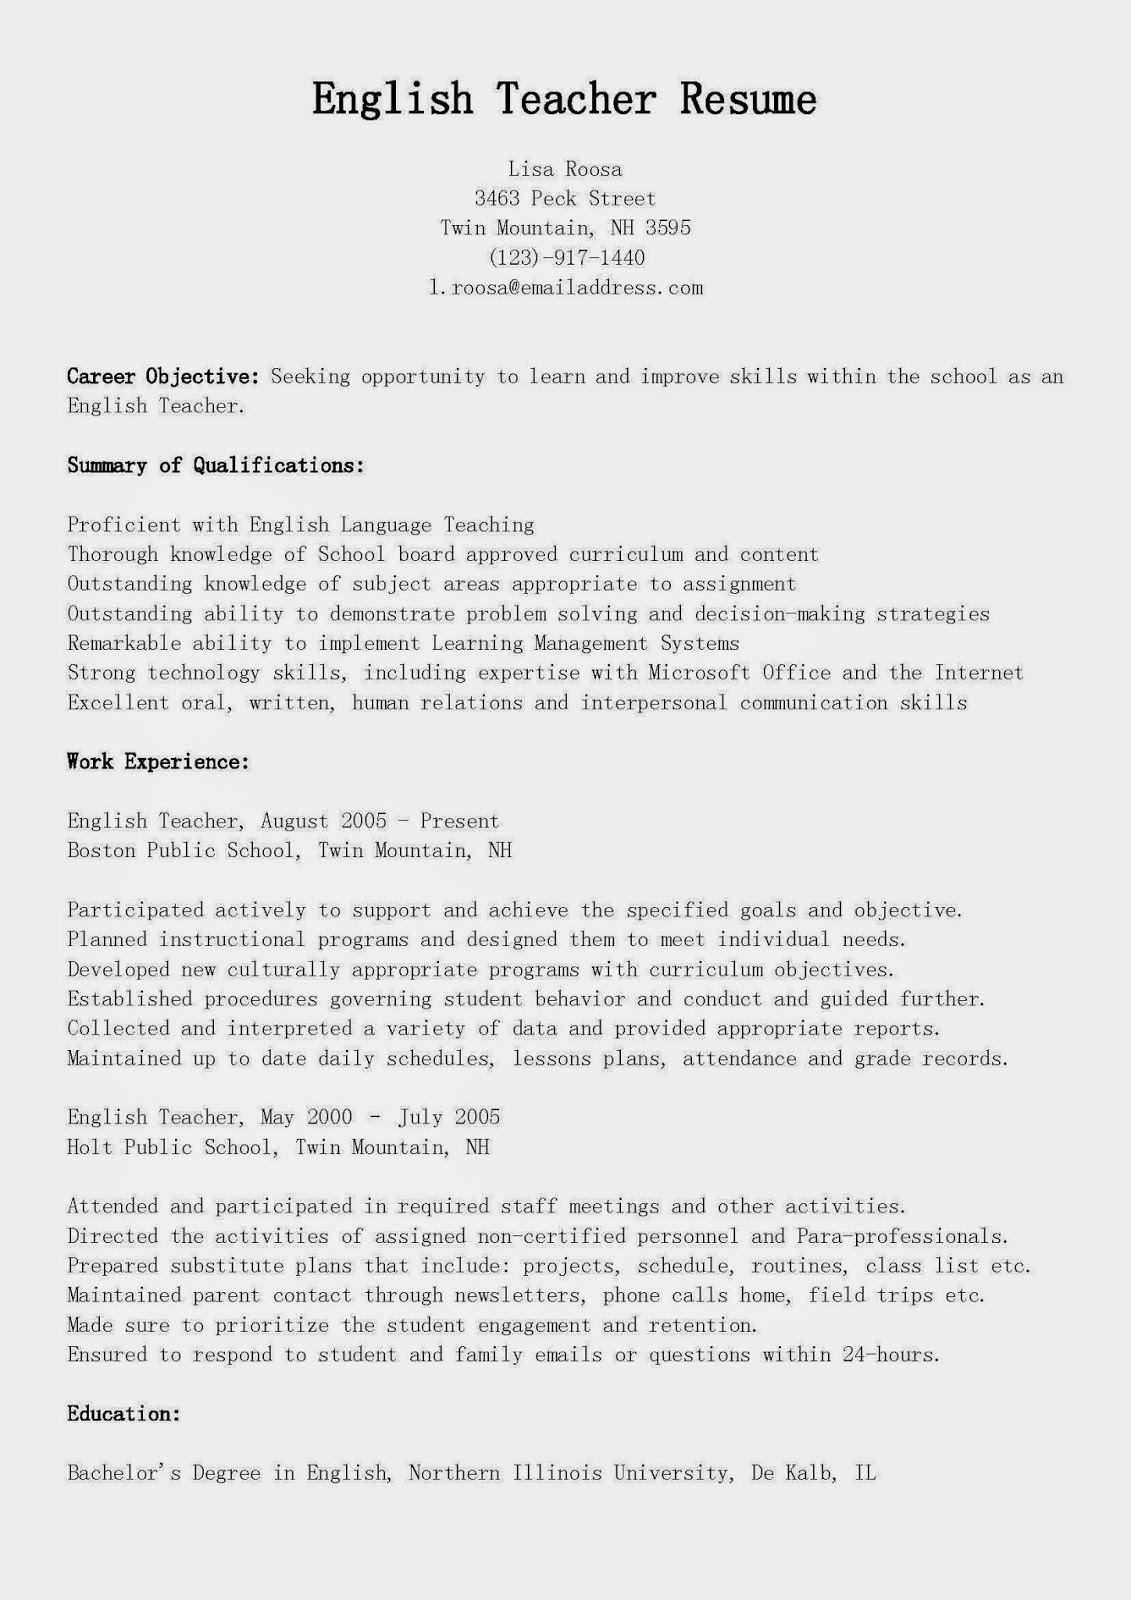 Teacher Resume Examples Resume Samples English Teacher Resume Sample